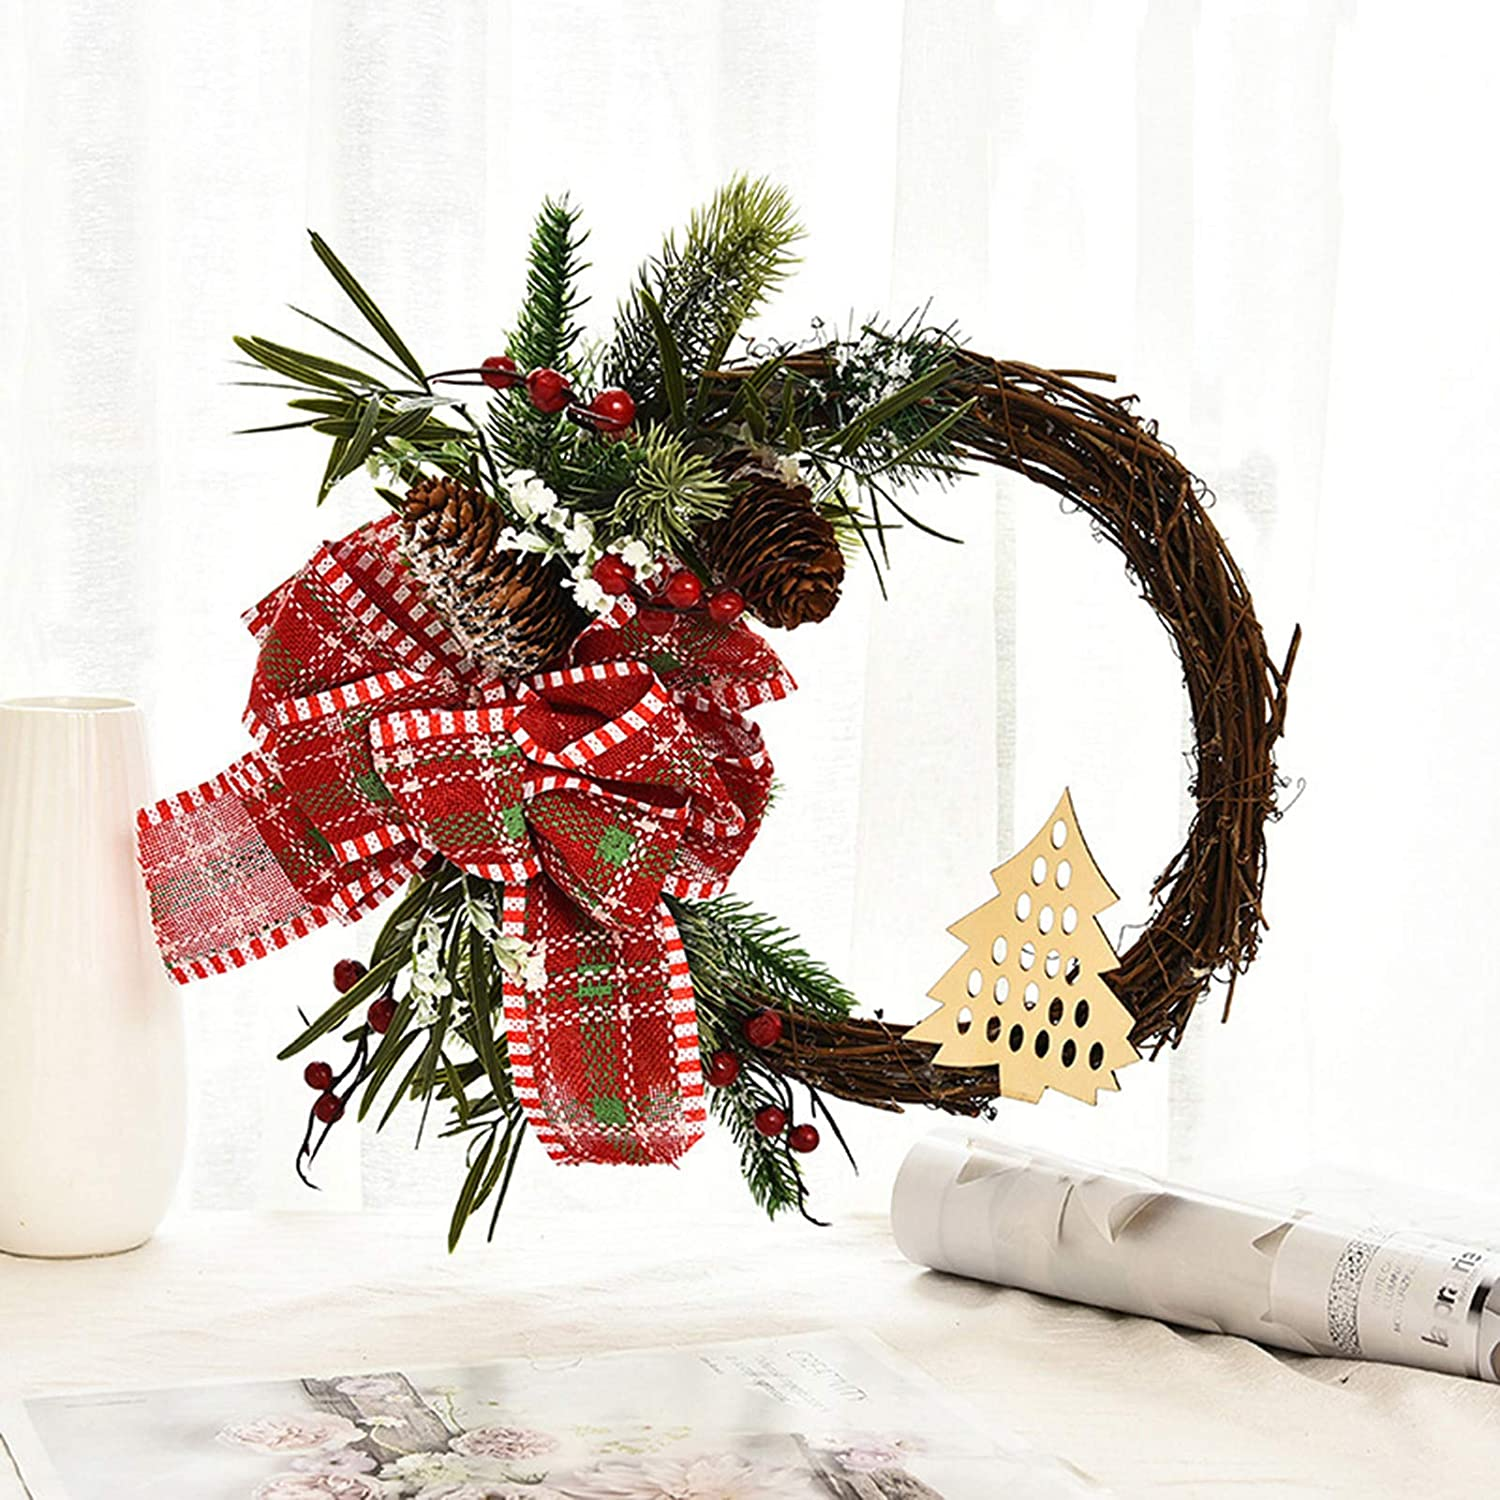 kaiwern Christmas Artificial Max NEW before selling 59% OFF Wreath Decoration Door Front Windo